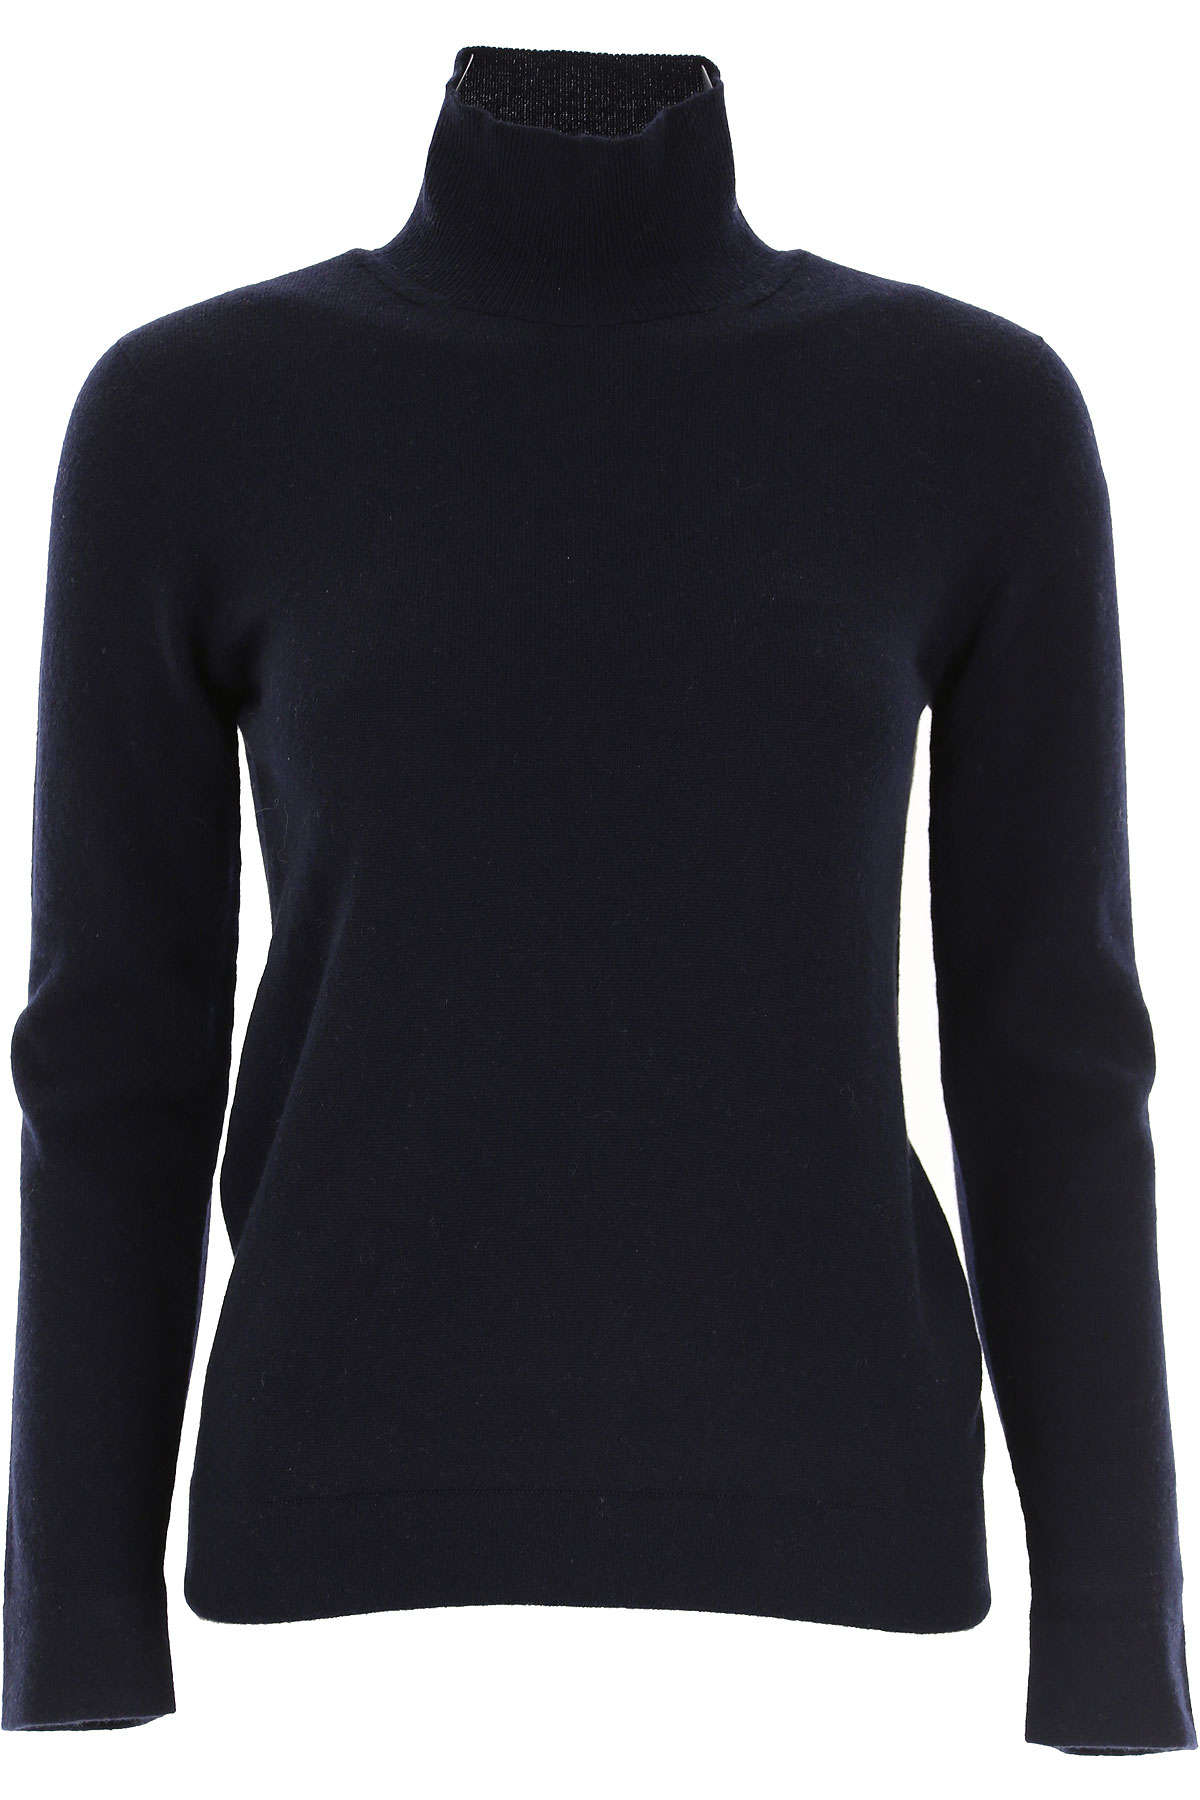 Agnona Sweater for Women Jumper On Sale, Ink Blue, Cashmere, 2019, 6 8